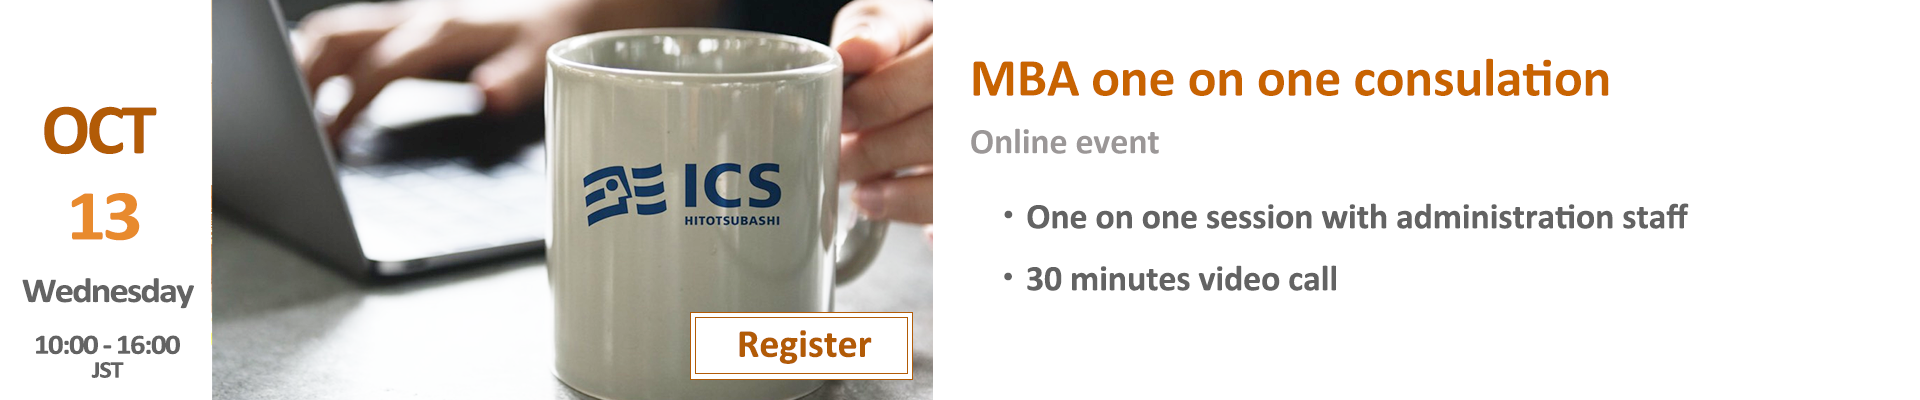 MBA One on one